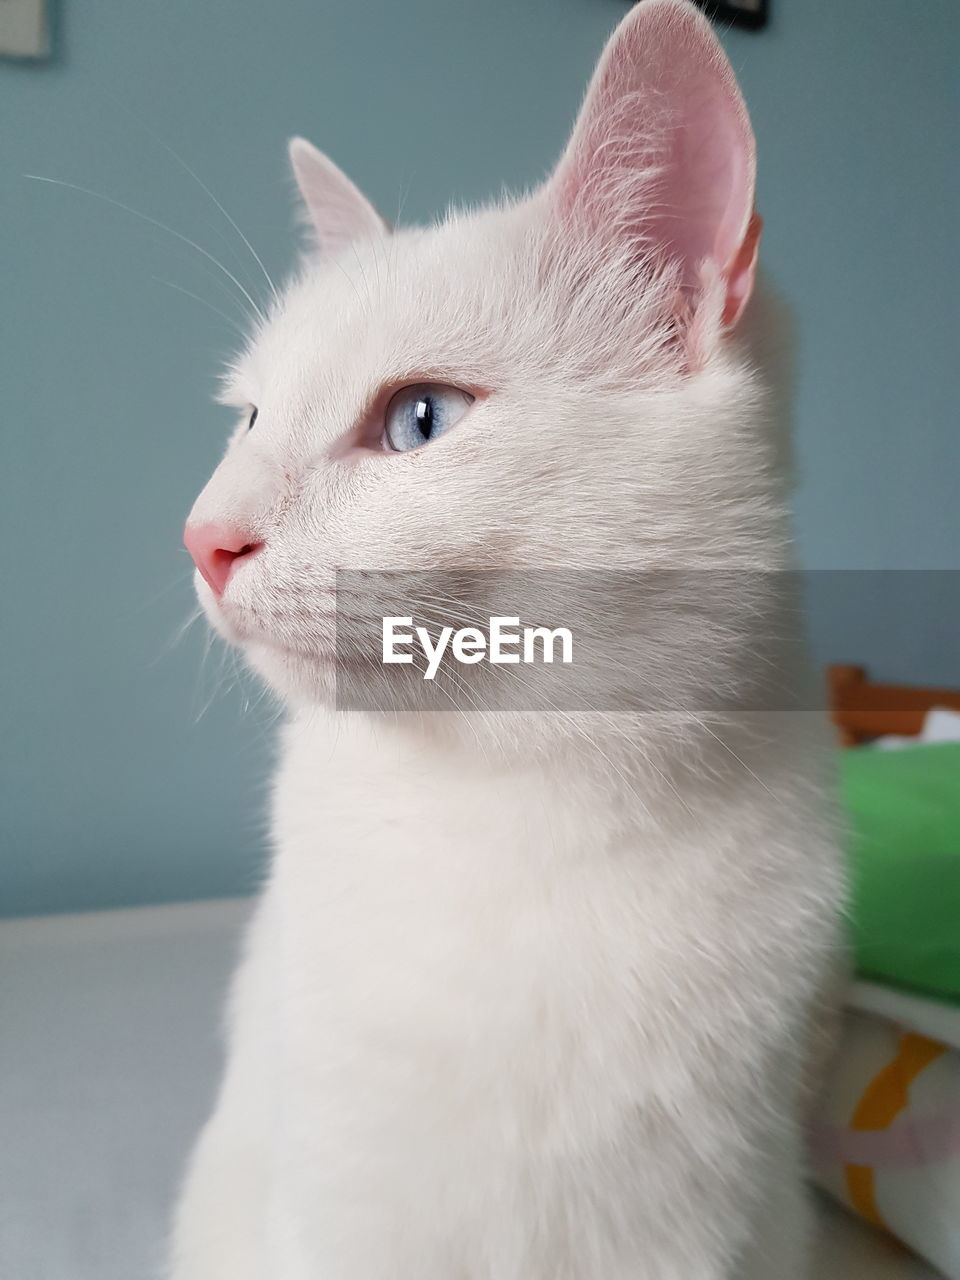 domestic, pets, one animal, mammal, animal themes, animal, domestic animals, cat, domestic cat, feline, vertebrate, close-up, looking away, looking, focus on foreground, white color, whisker, no people, indoors, animal body part, animal head, animal eye